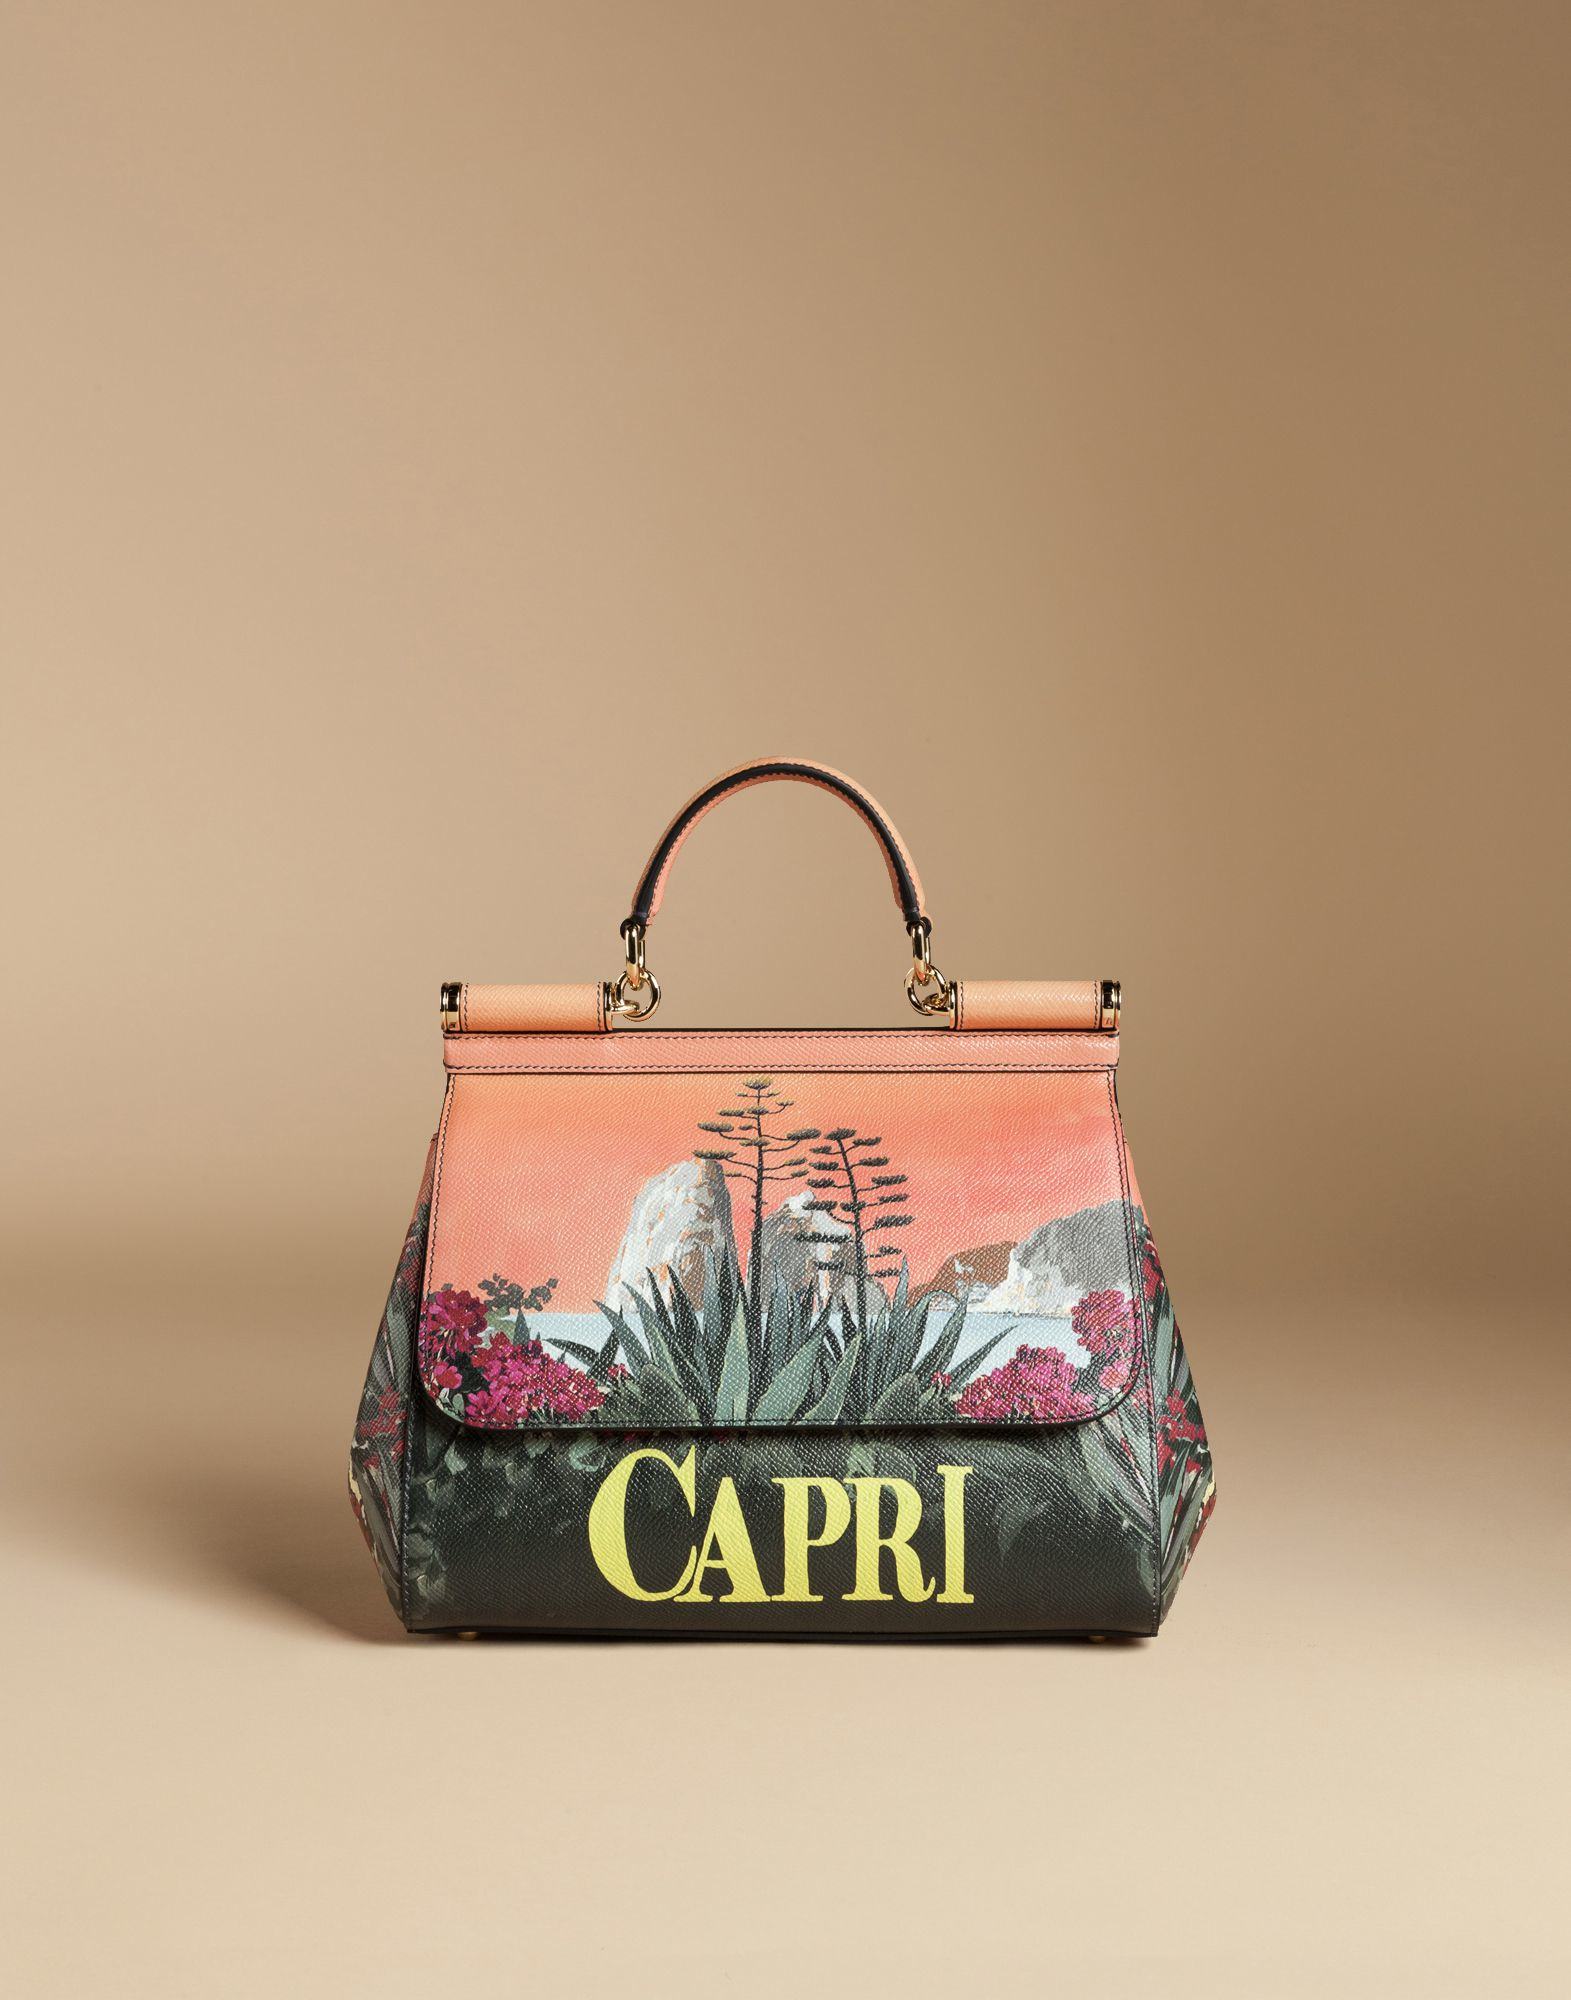 5647023ef786 Lyst - Dolce   Gabbana Medium Sicily Bag In Printed Dauphine Leather